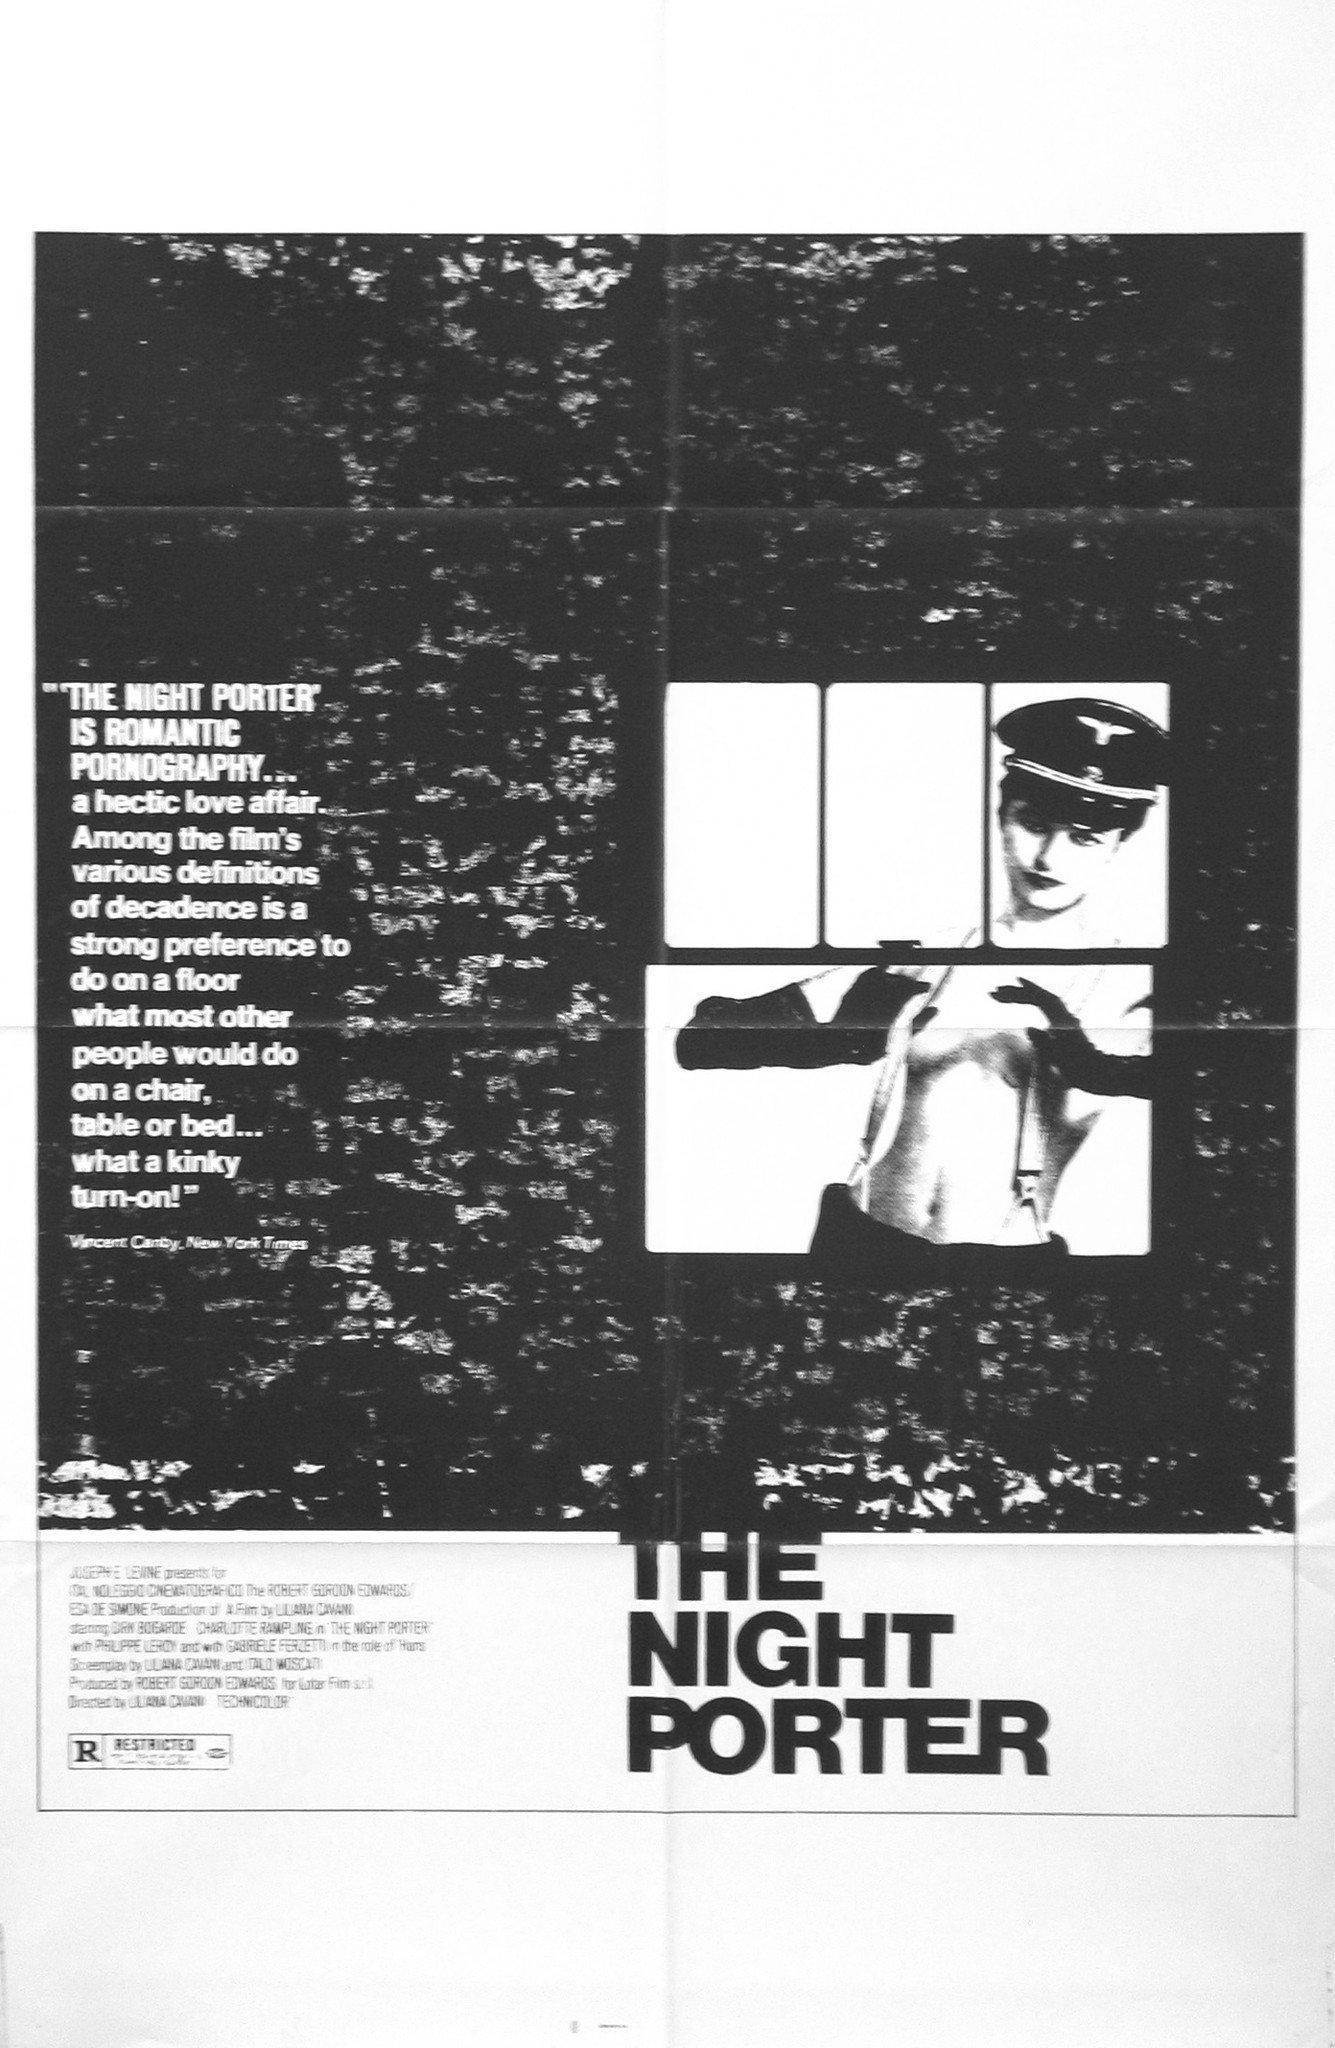 The Night Porter 1 Sheet (27x41) Original Vintage Movie Poster